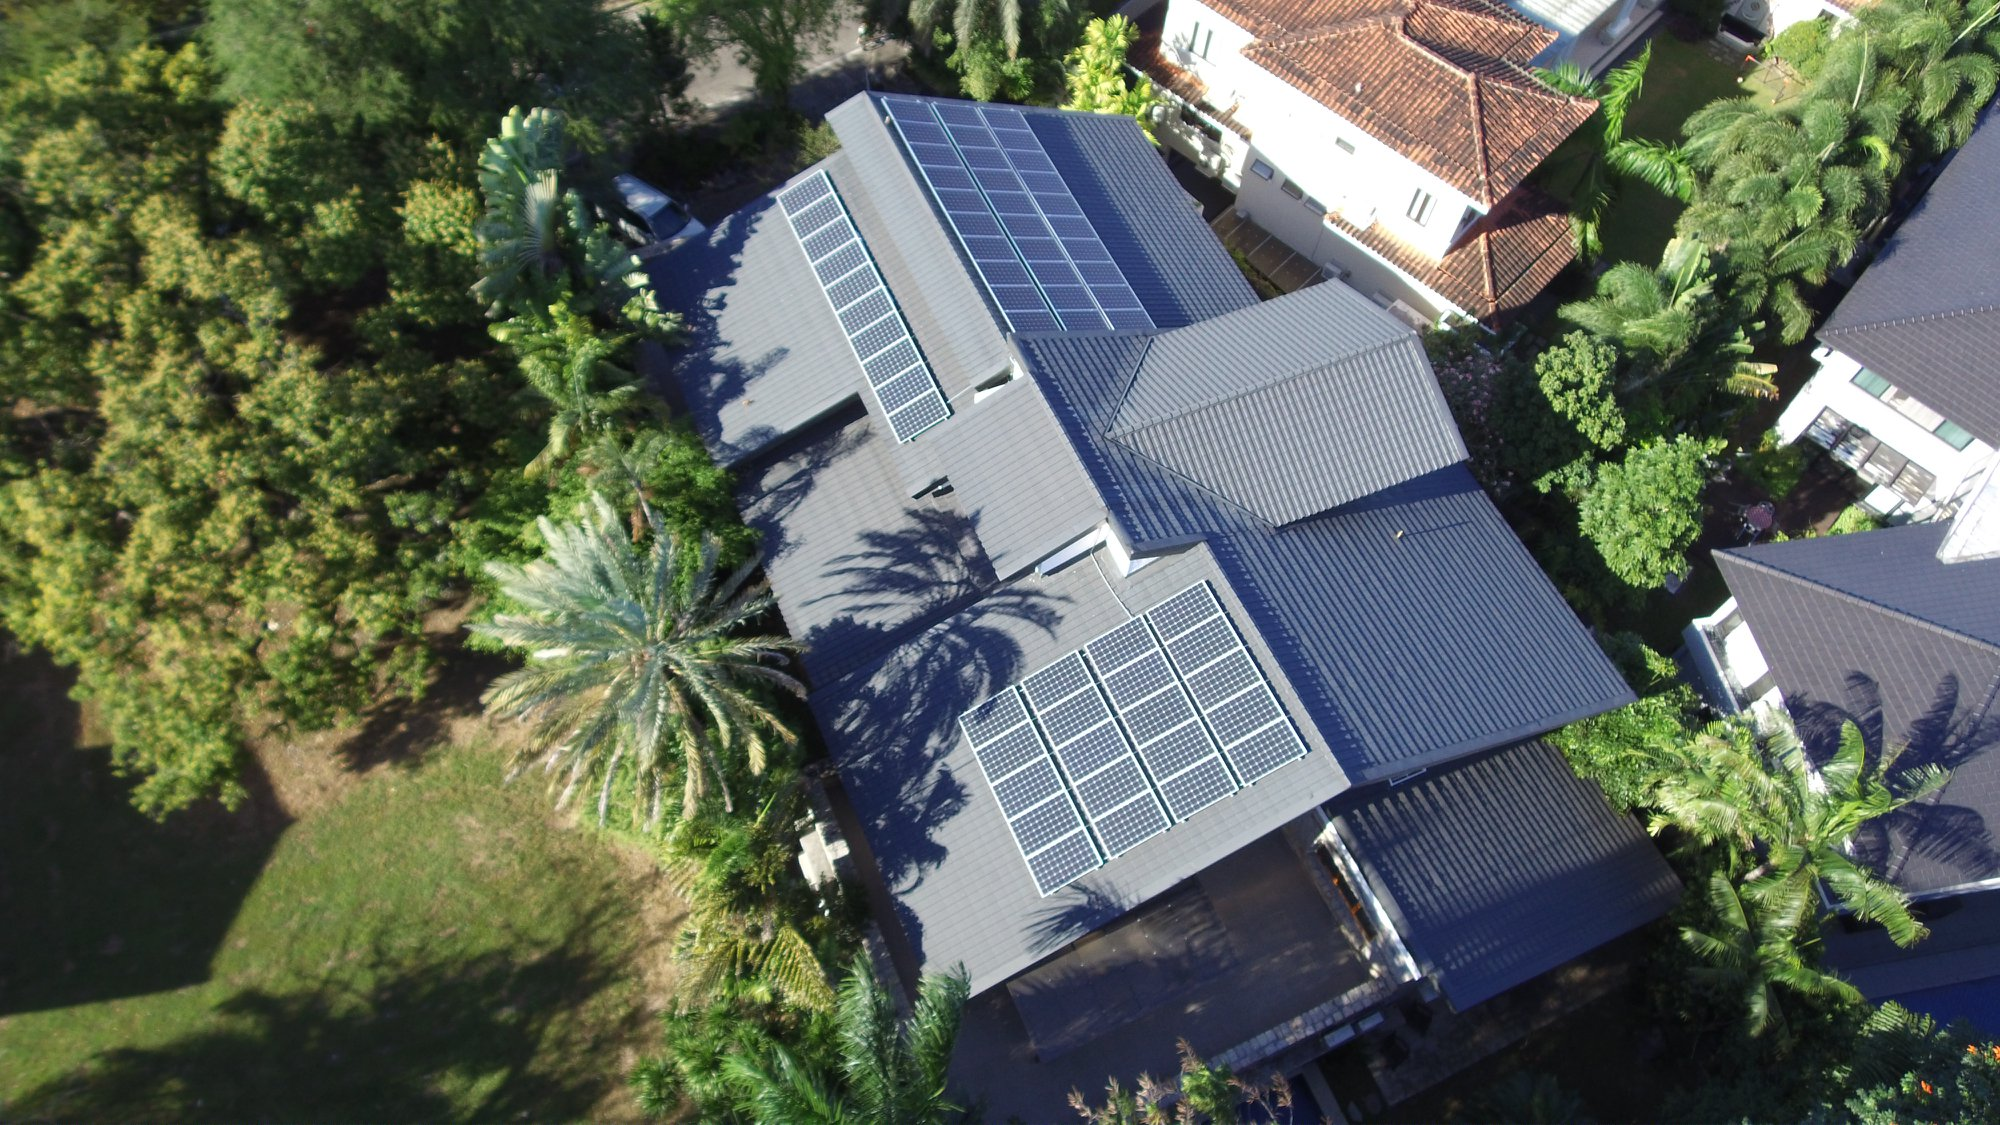 Take a peek into understanding rooftop solar